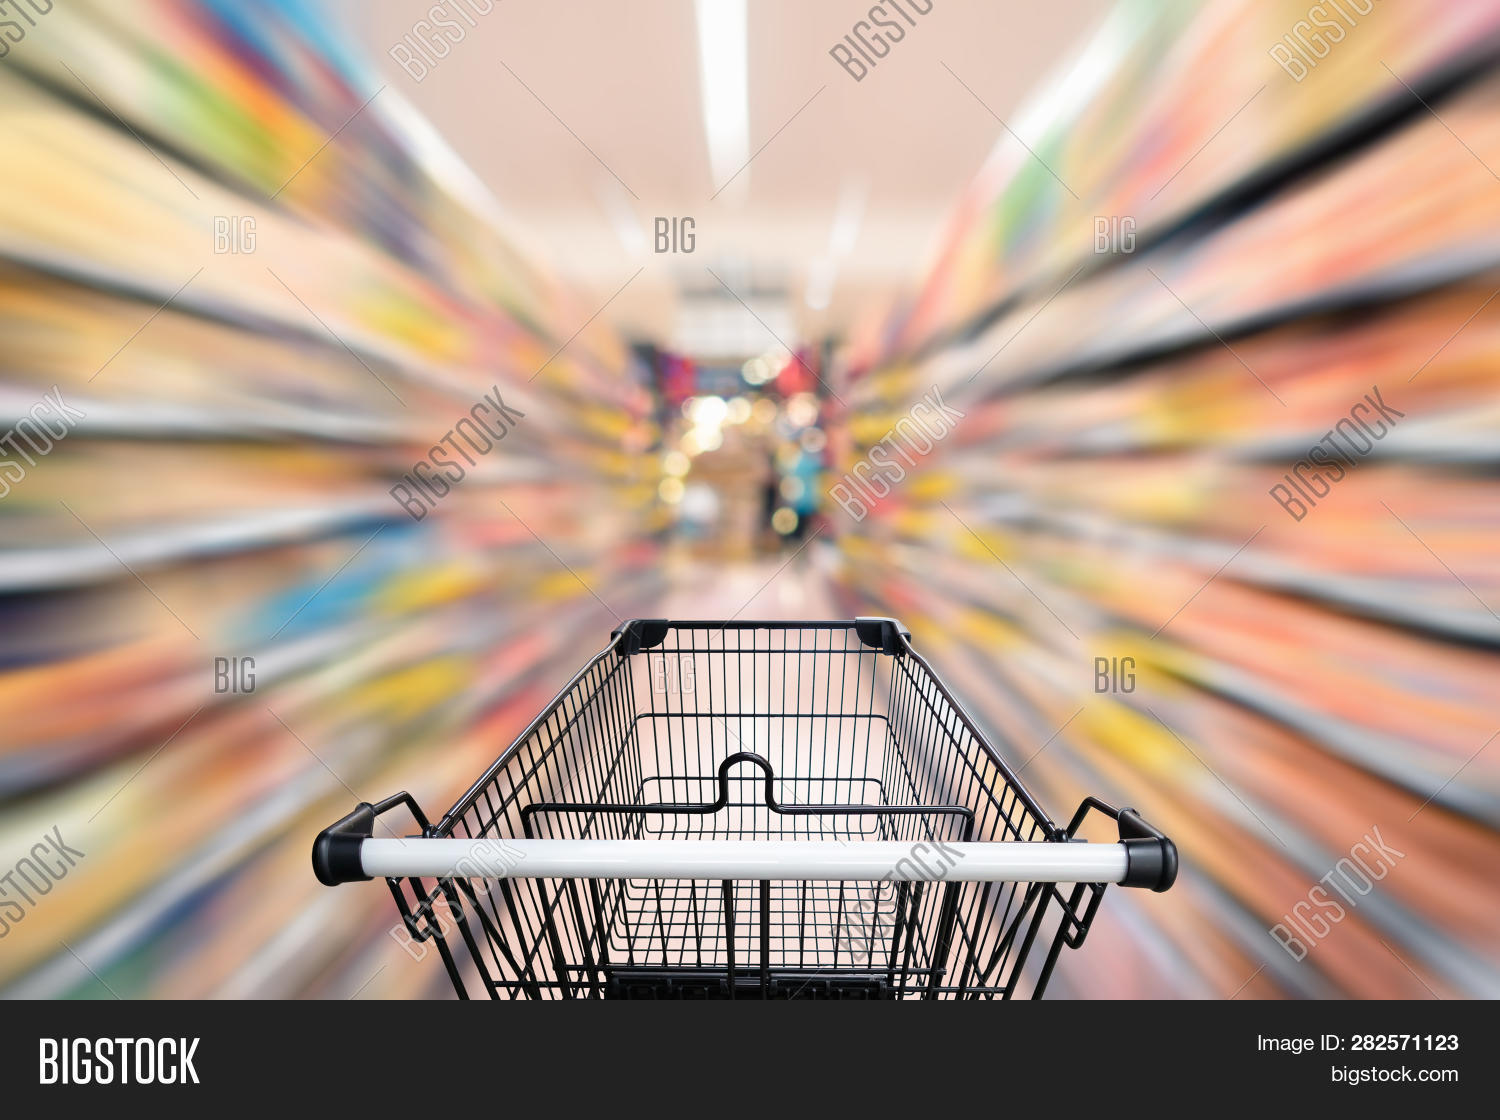 abstract,aisle,background,basket,blur,blurred,bokeh,business,buy,buyer,cart,choice,color,commercial,consumer,corridor,customer,defocus,floor,flooring,food,goods,grocery,indoor,inside,interior,lifestyle,light,mall,market,merchandise,modern,motion,people,perspective,product,purchase,rack,retail,row,sale,shelf,shop,shopper,store,supermarket,trolley,walking,window